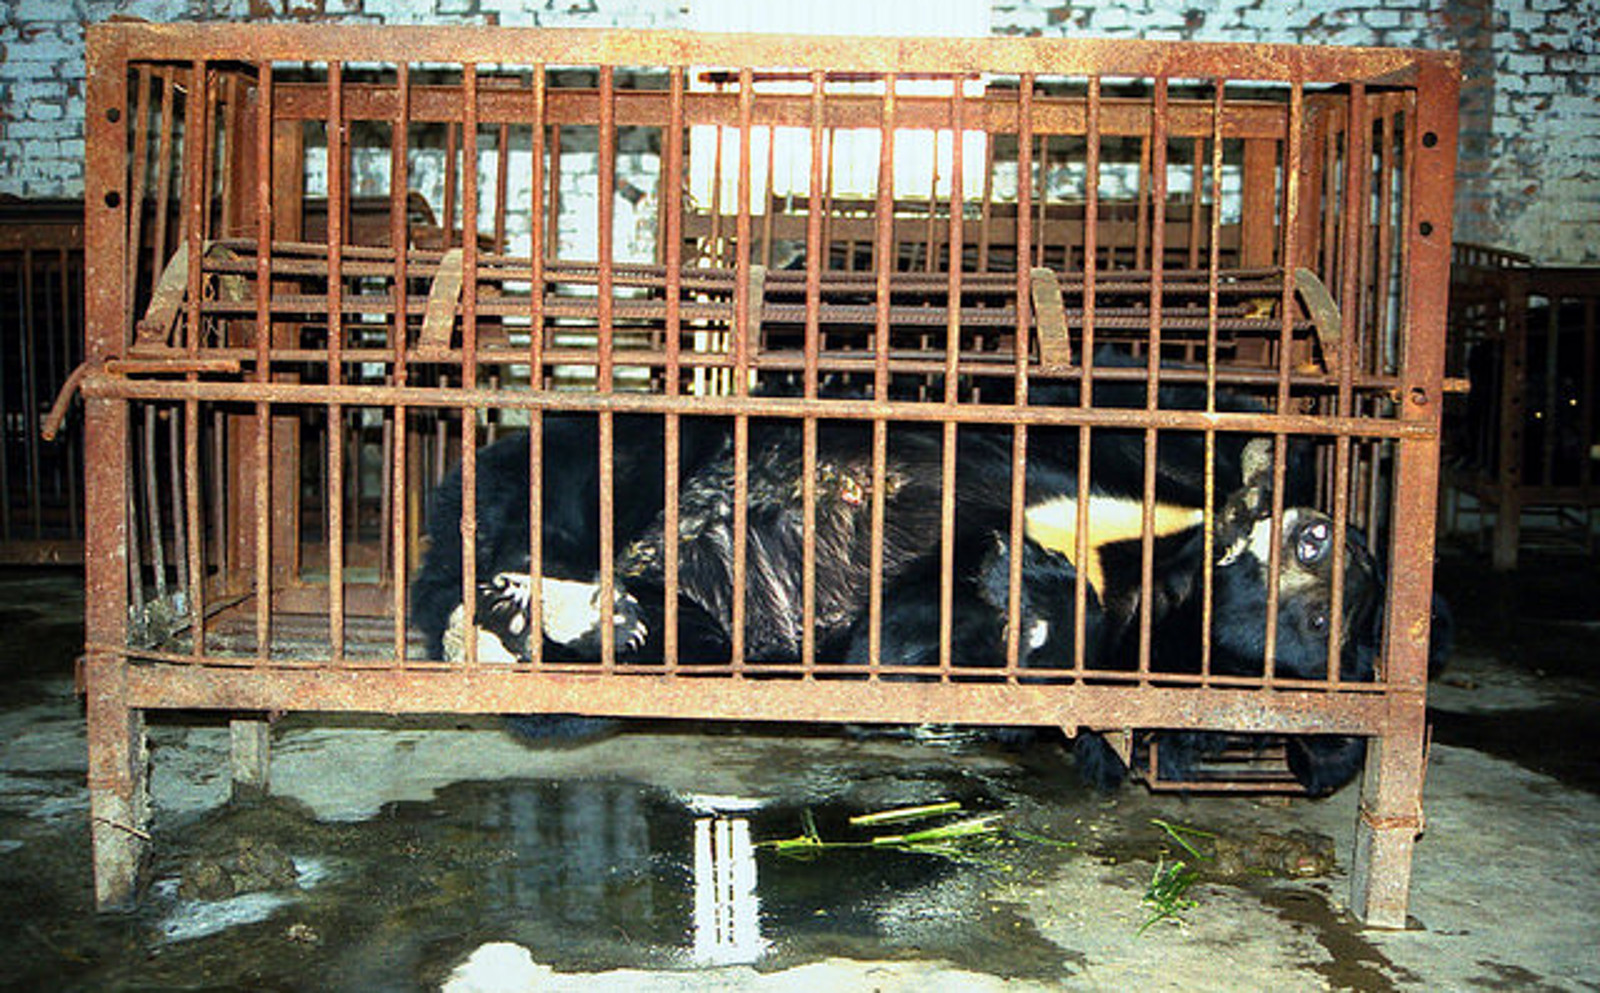 5 Bizarre Uses for Bear Bile That You Won't Believe are Real